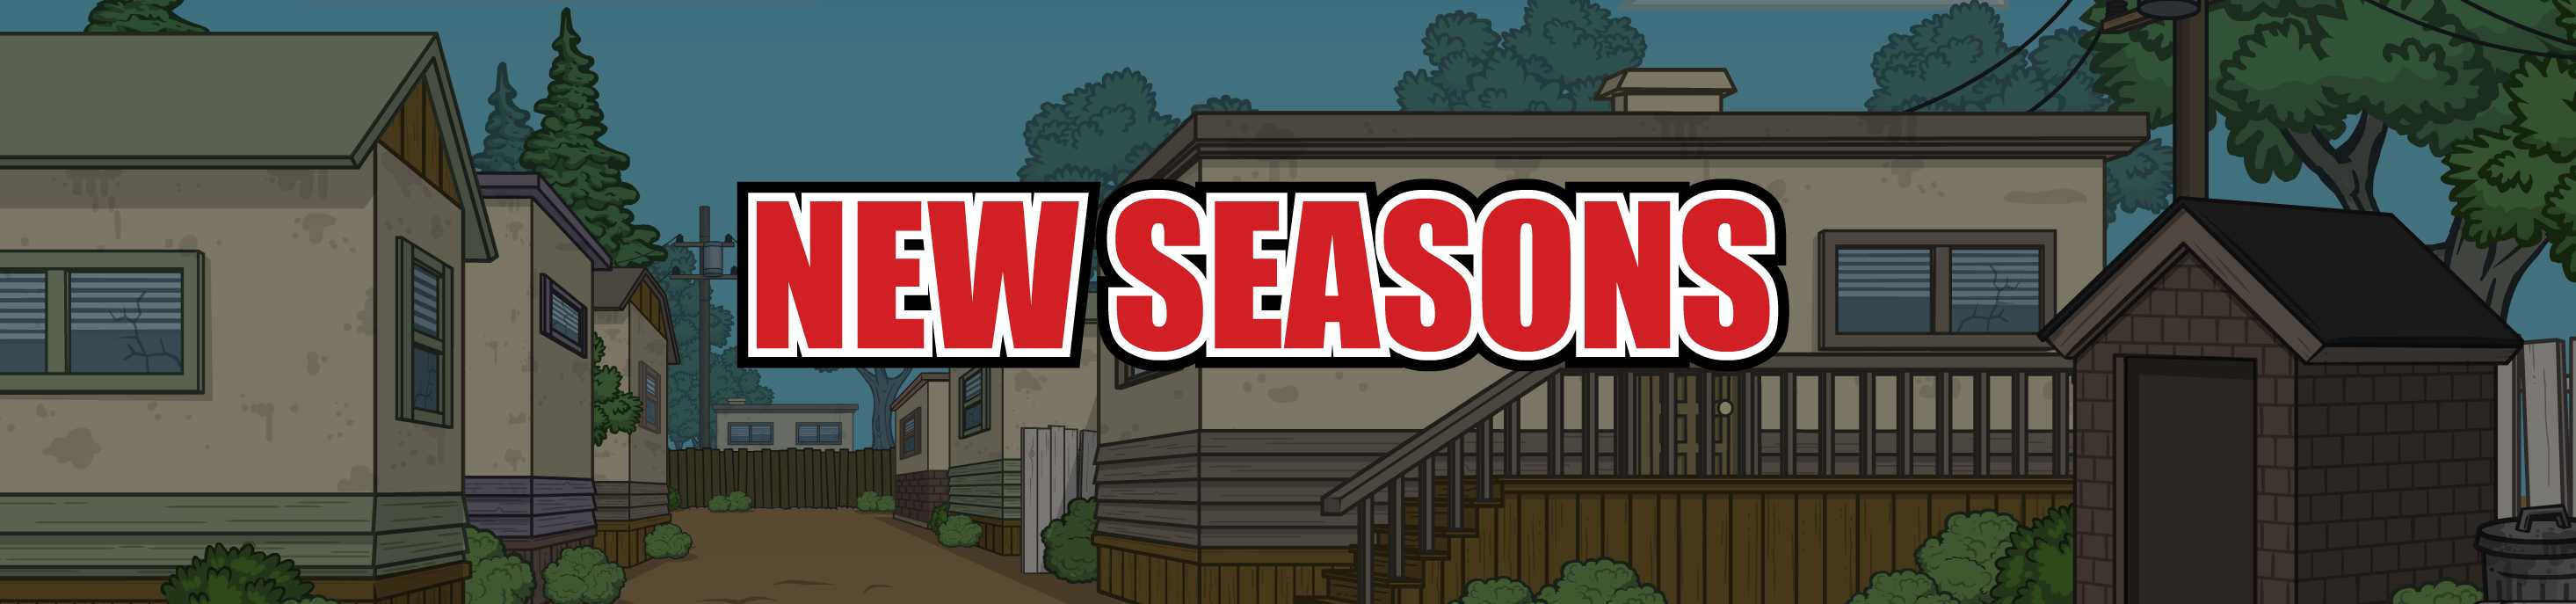 New Seasons!